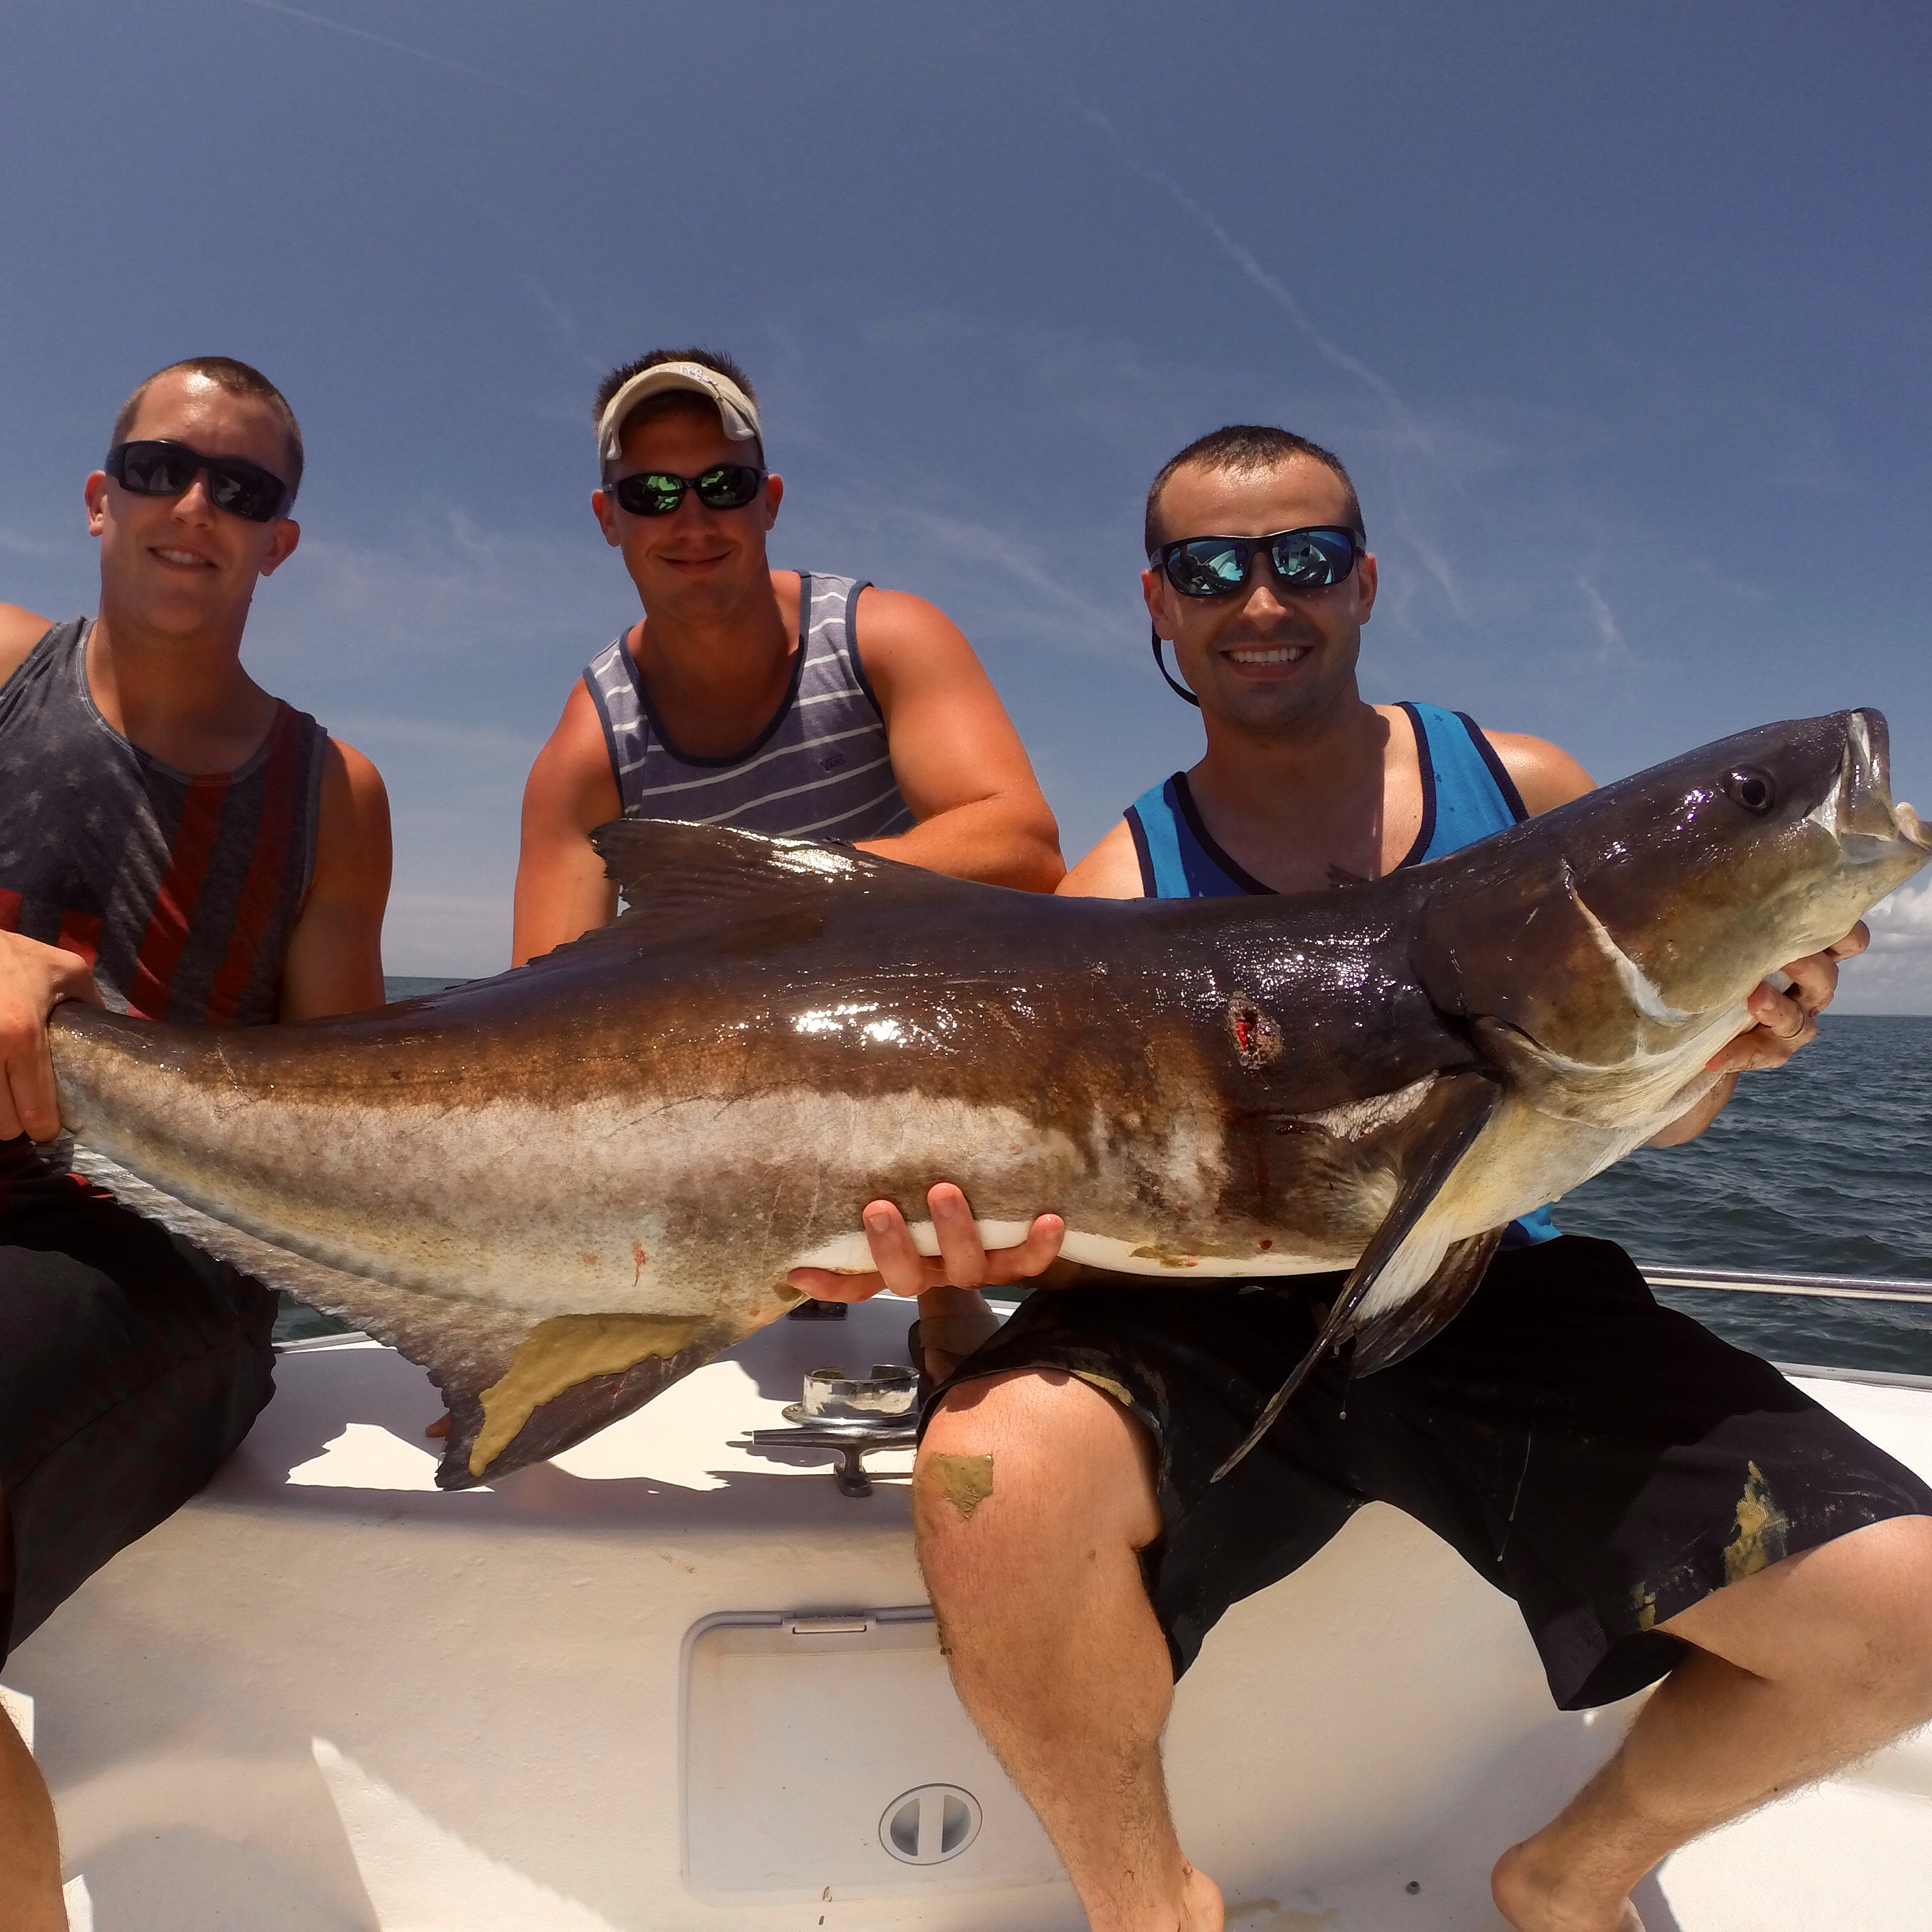 A group smiles after they catch a fish on a cobia fishing charter